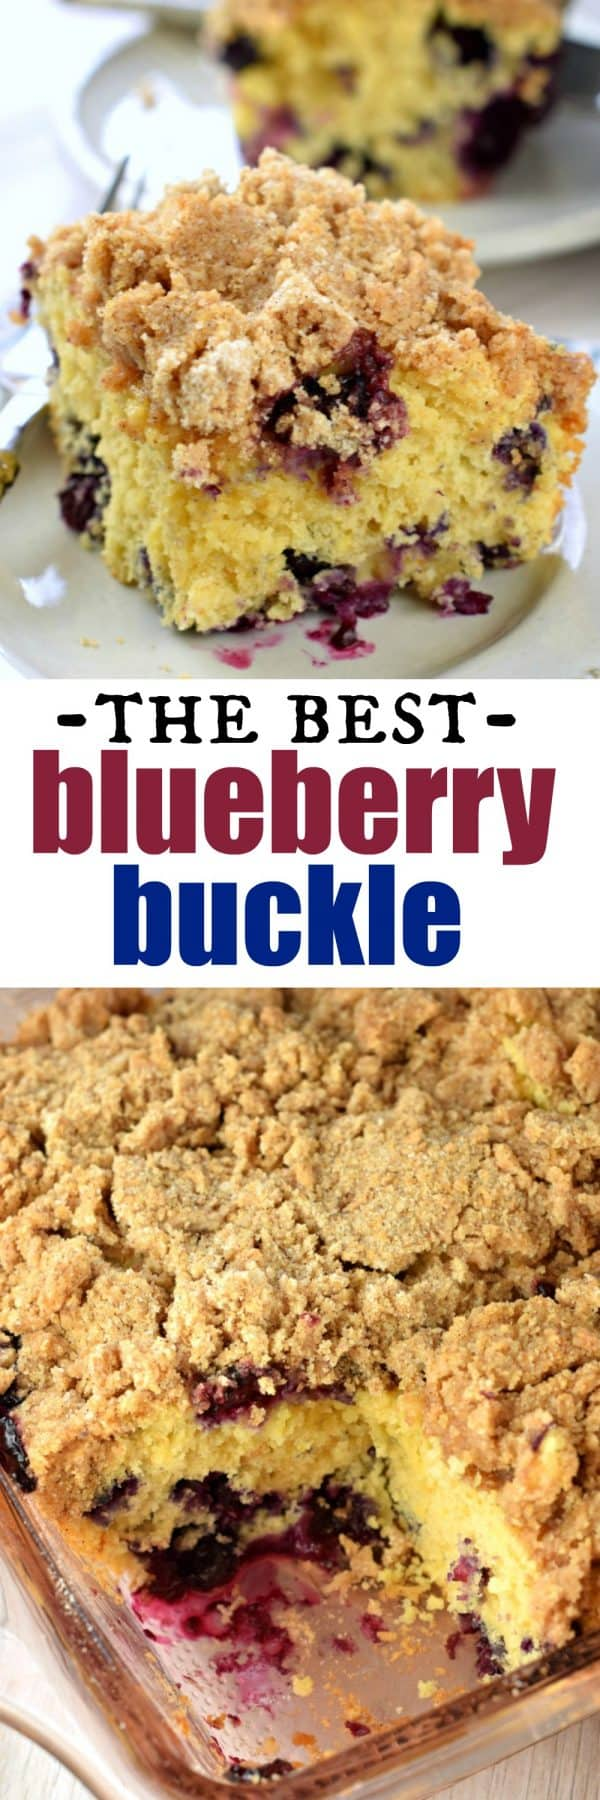 Tender and moist, this Blueberry Buckle Breakfast Cake recipe is the perfect start to your day. Packed with fresh berries and topped with a thick cinnamon streusel, you'll love a slice for breakfast or dessert!